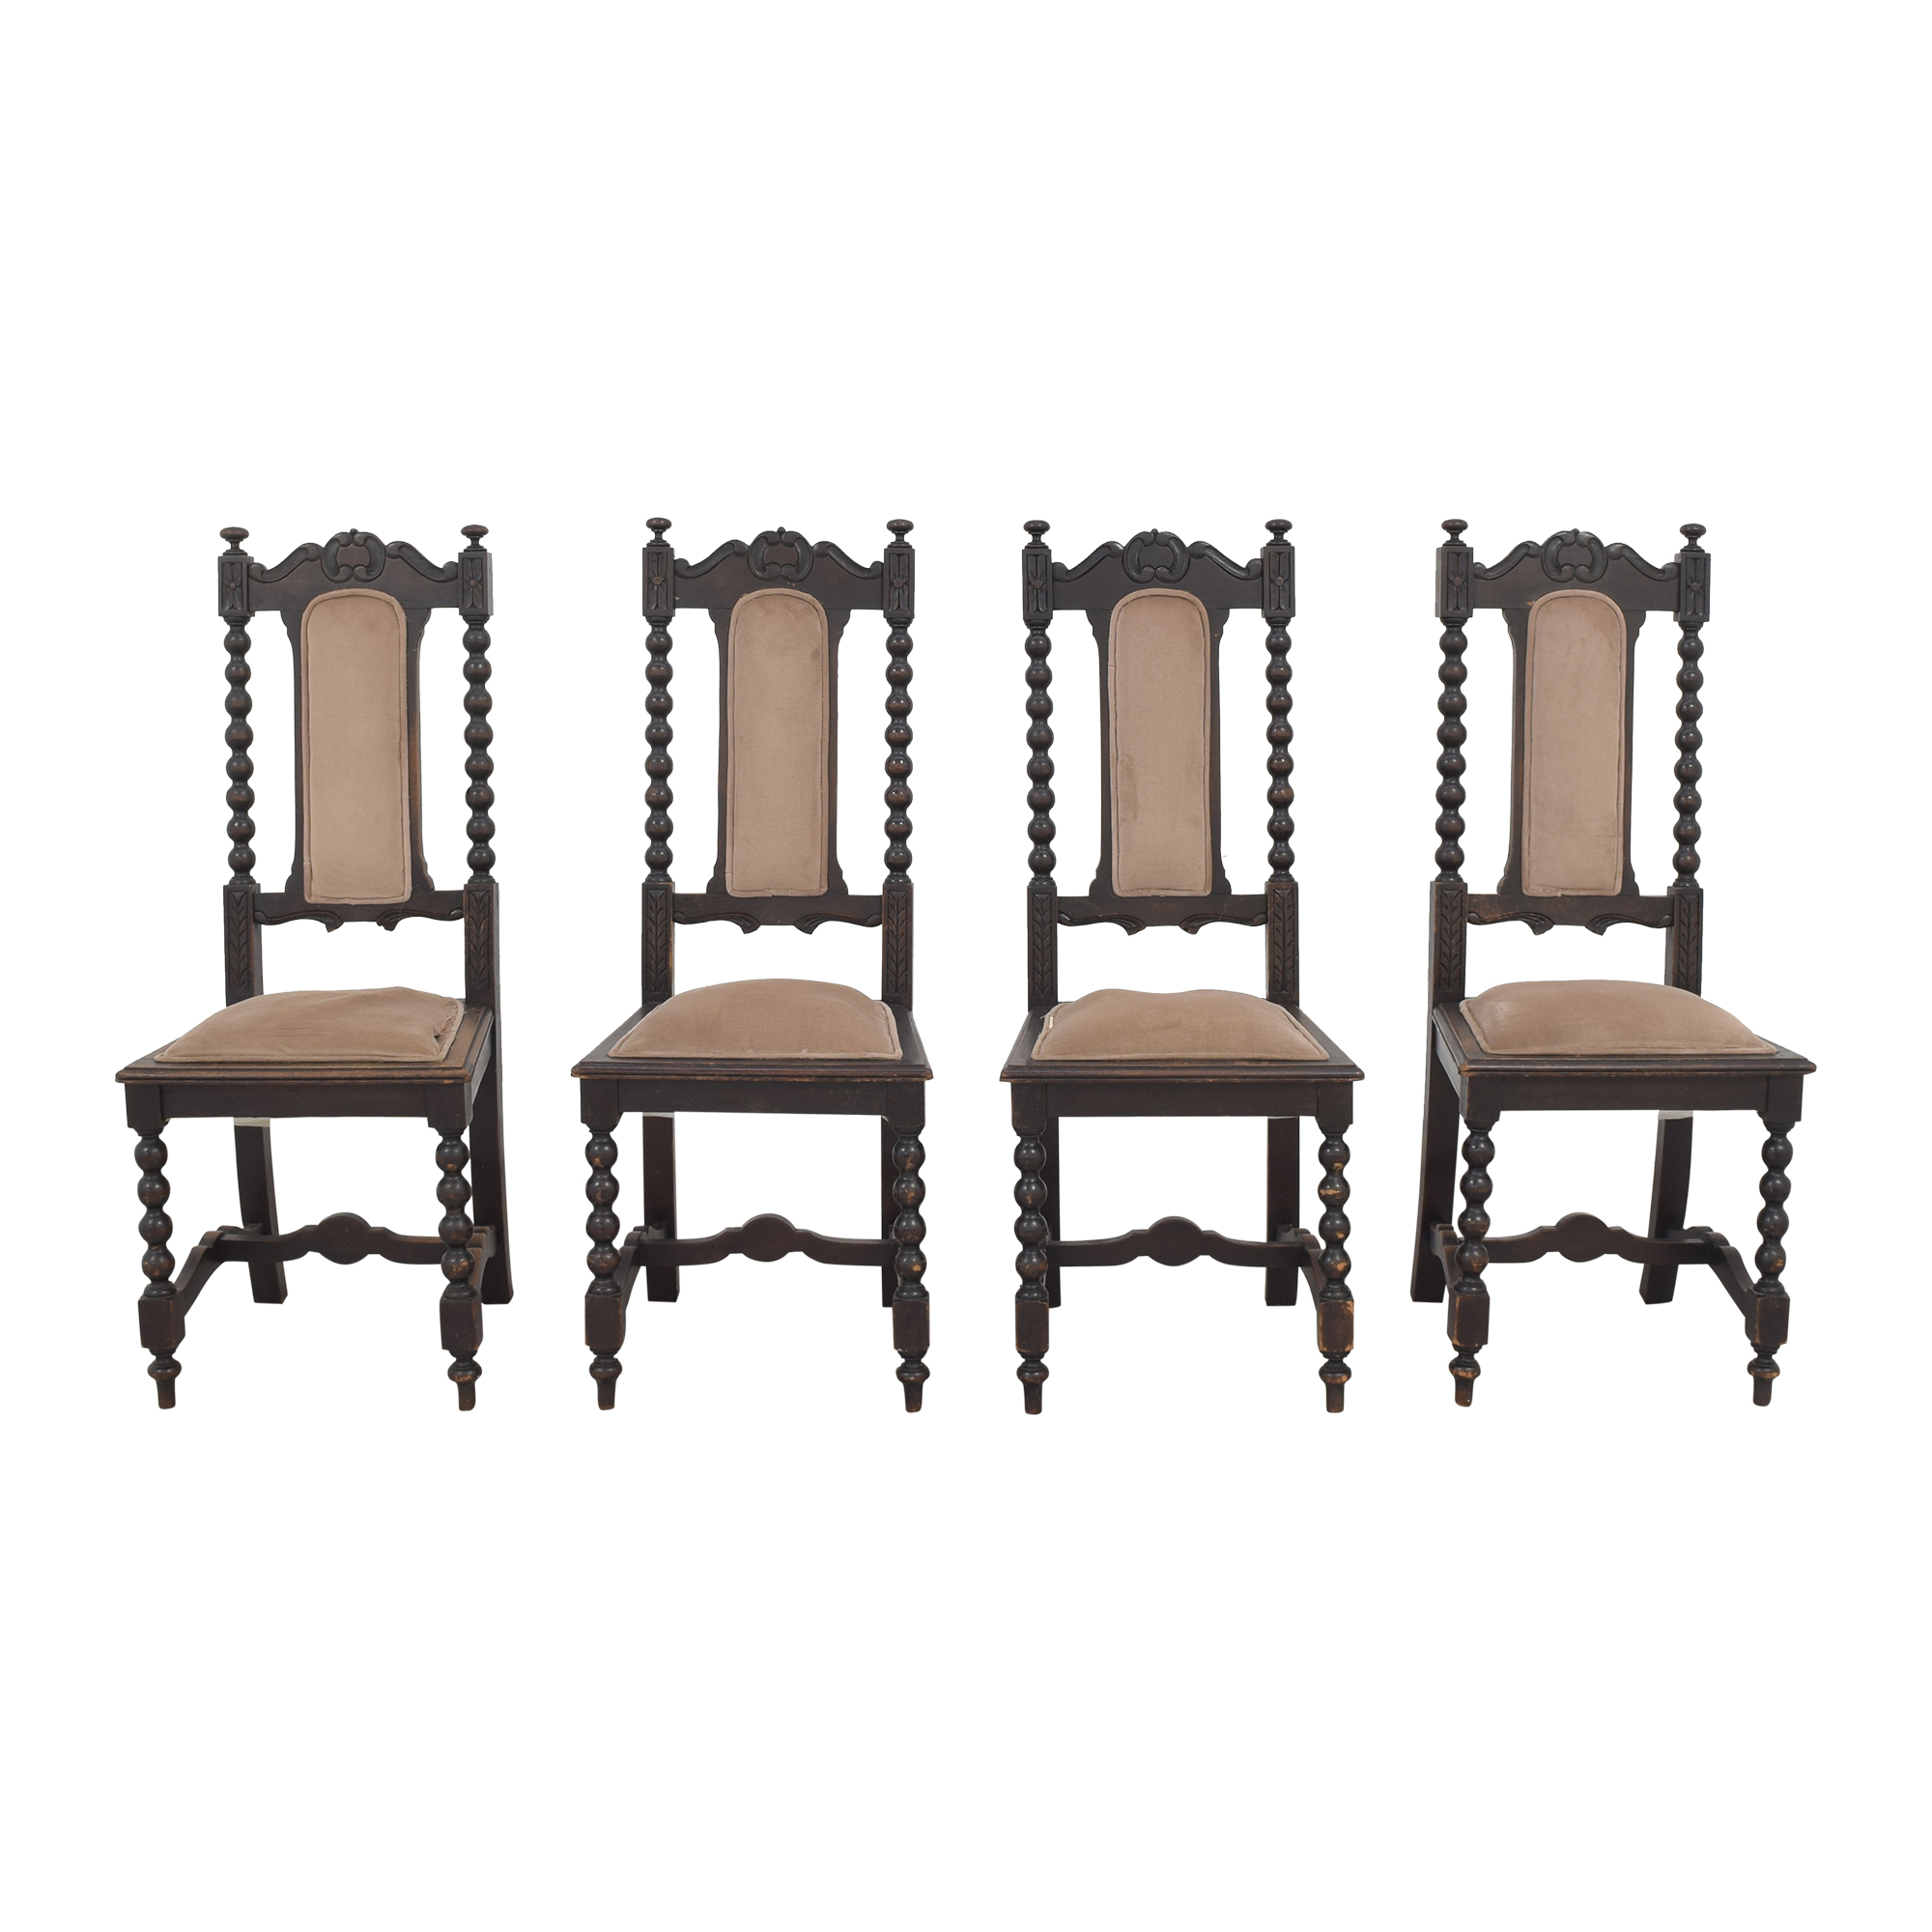 ABC Carpet & Home ABC Carpet & Home Dining Room Chairs ma